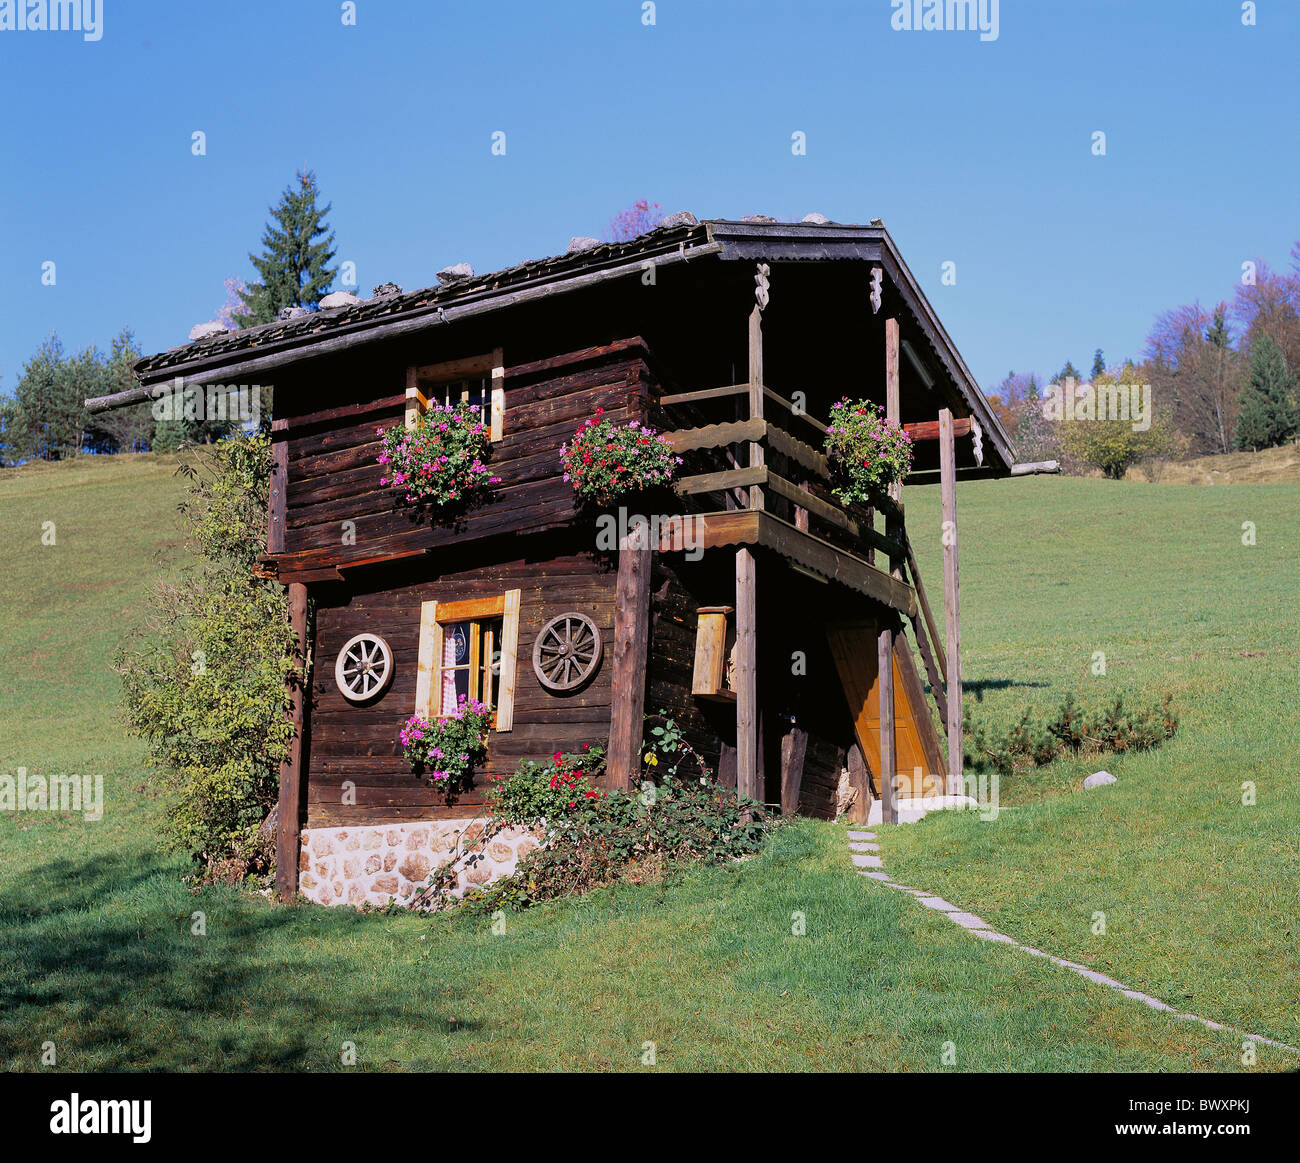 Timber House Log Cabin Small Balcony Meadow Germany Europe